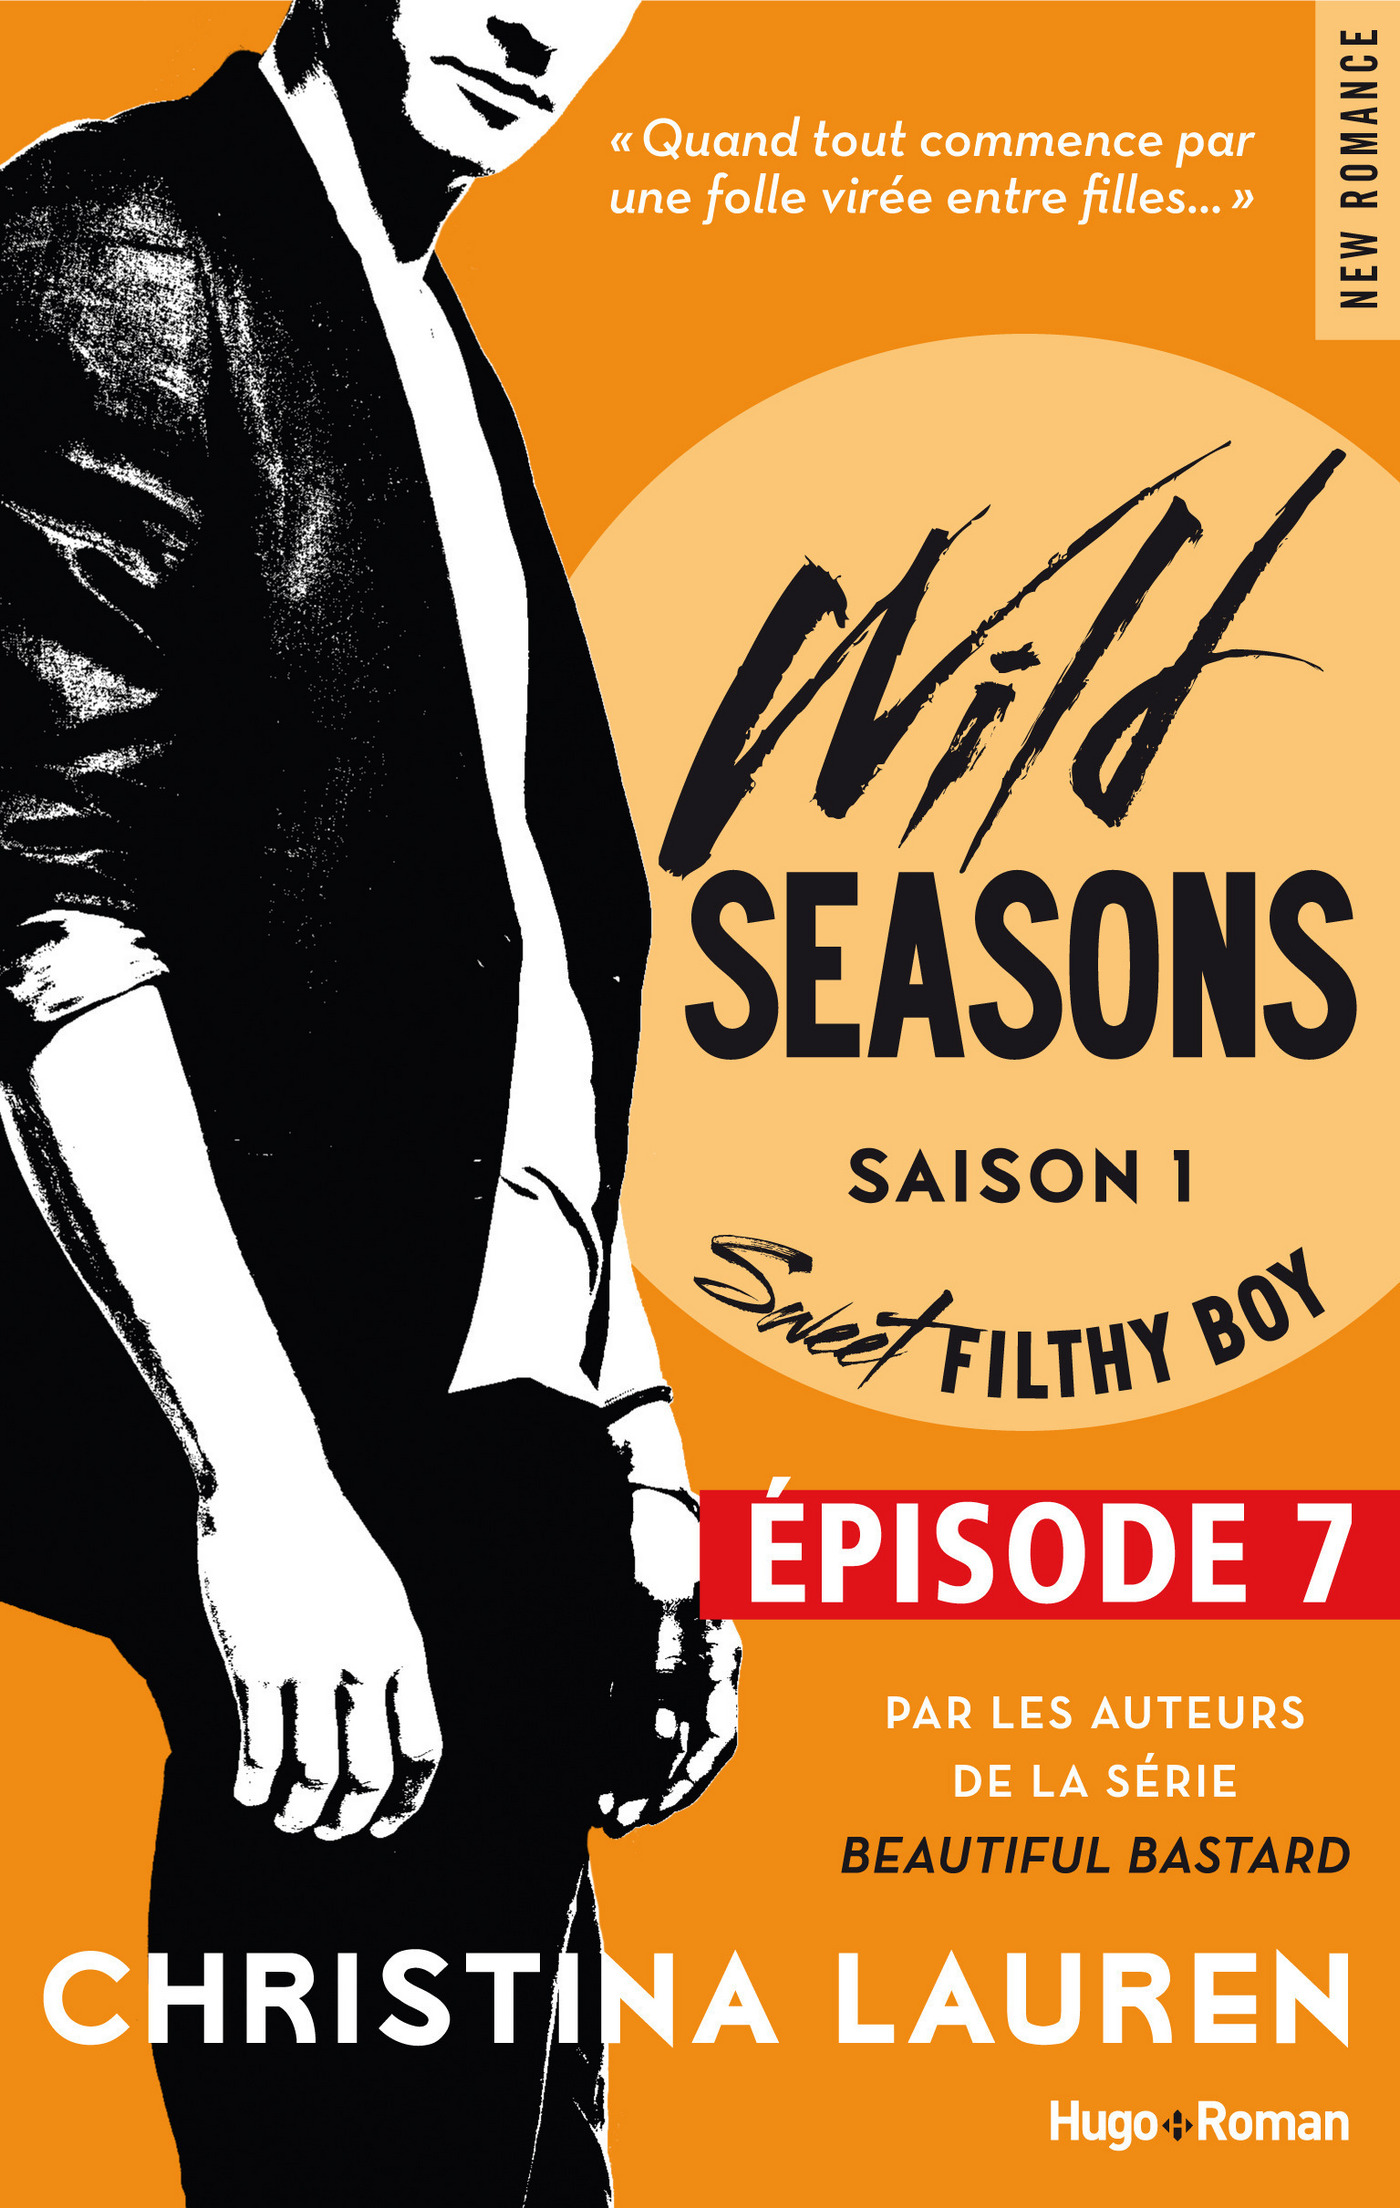 Wild Seasons Saison 1 Episode 7 Sweet filthy boy